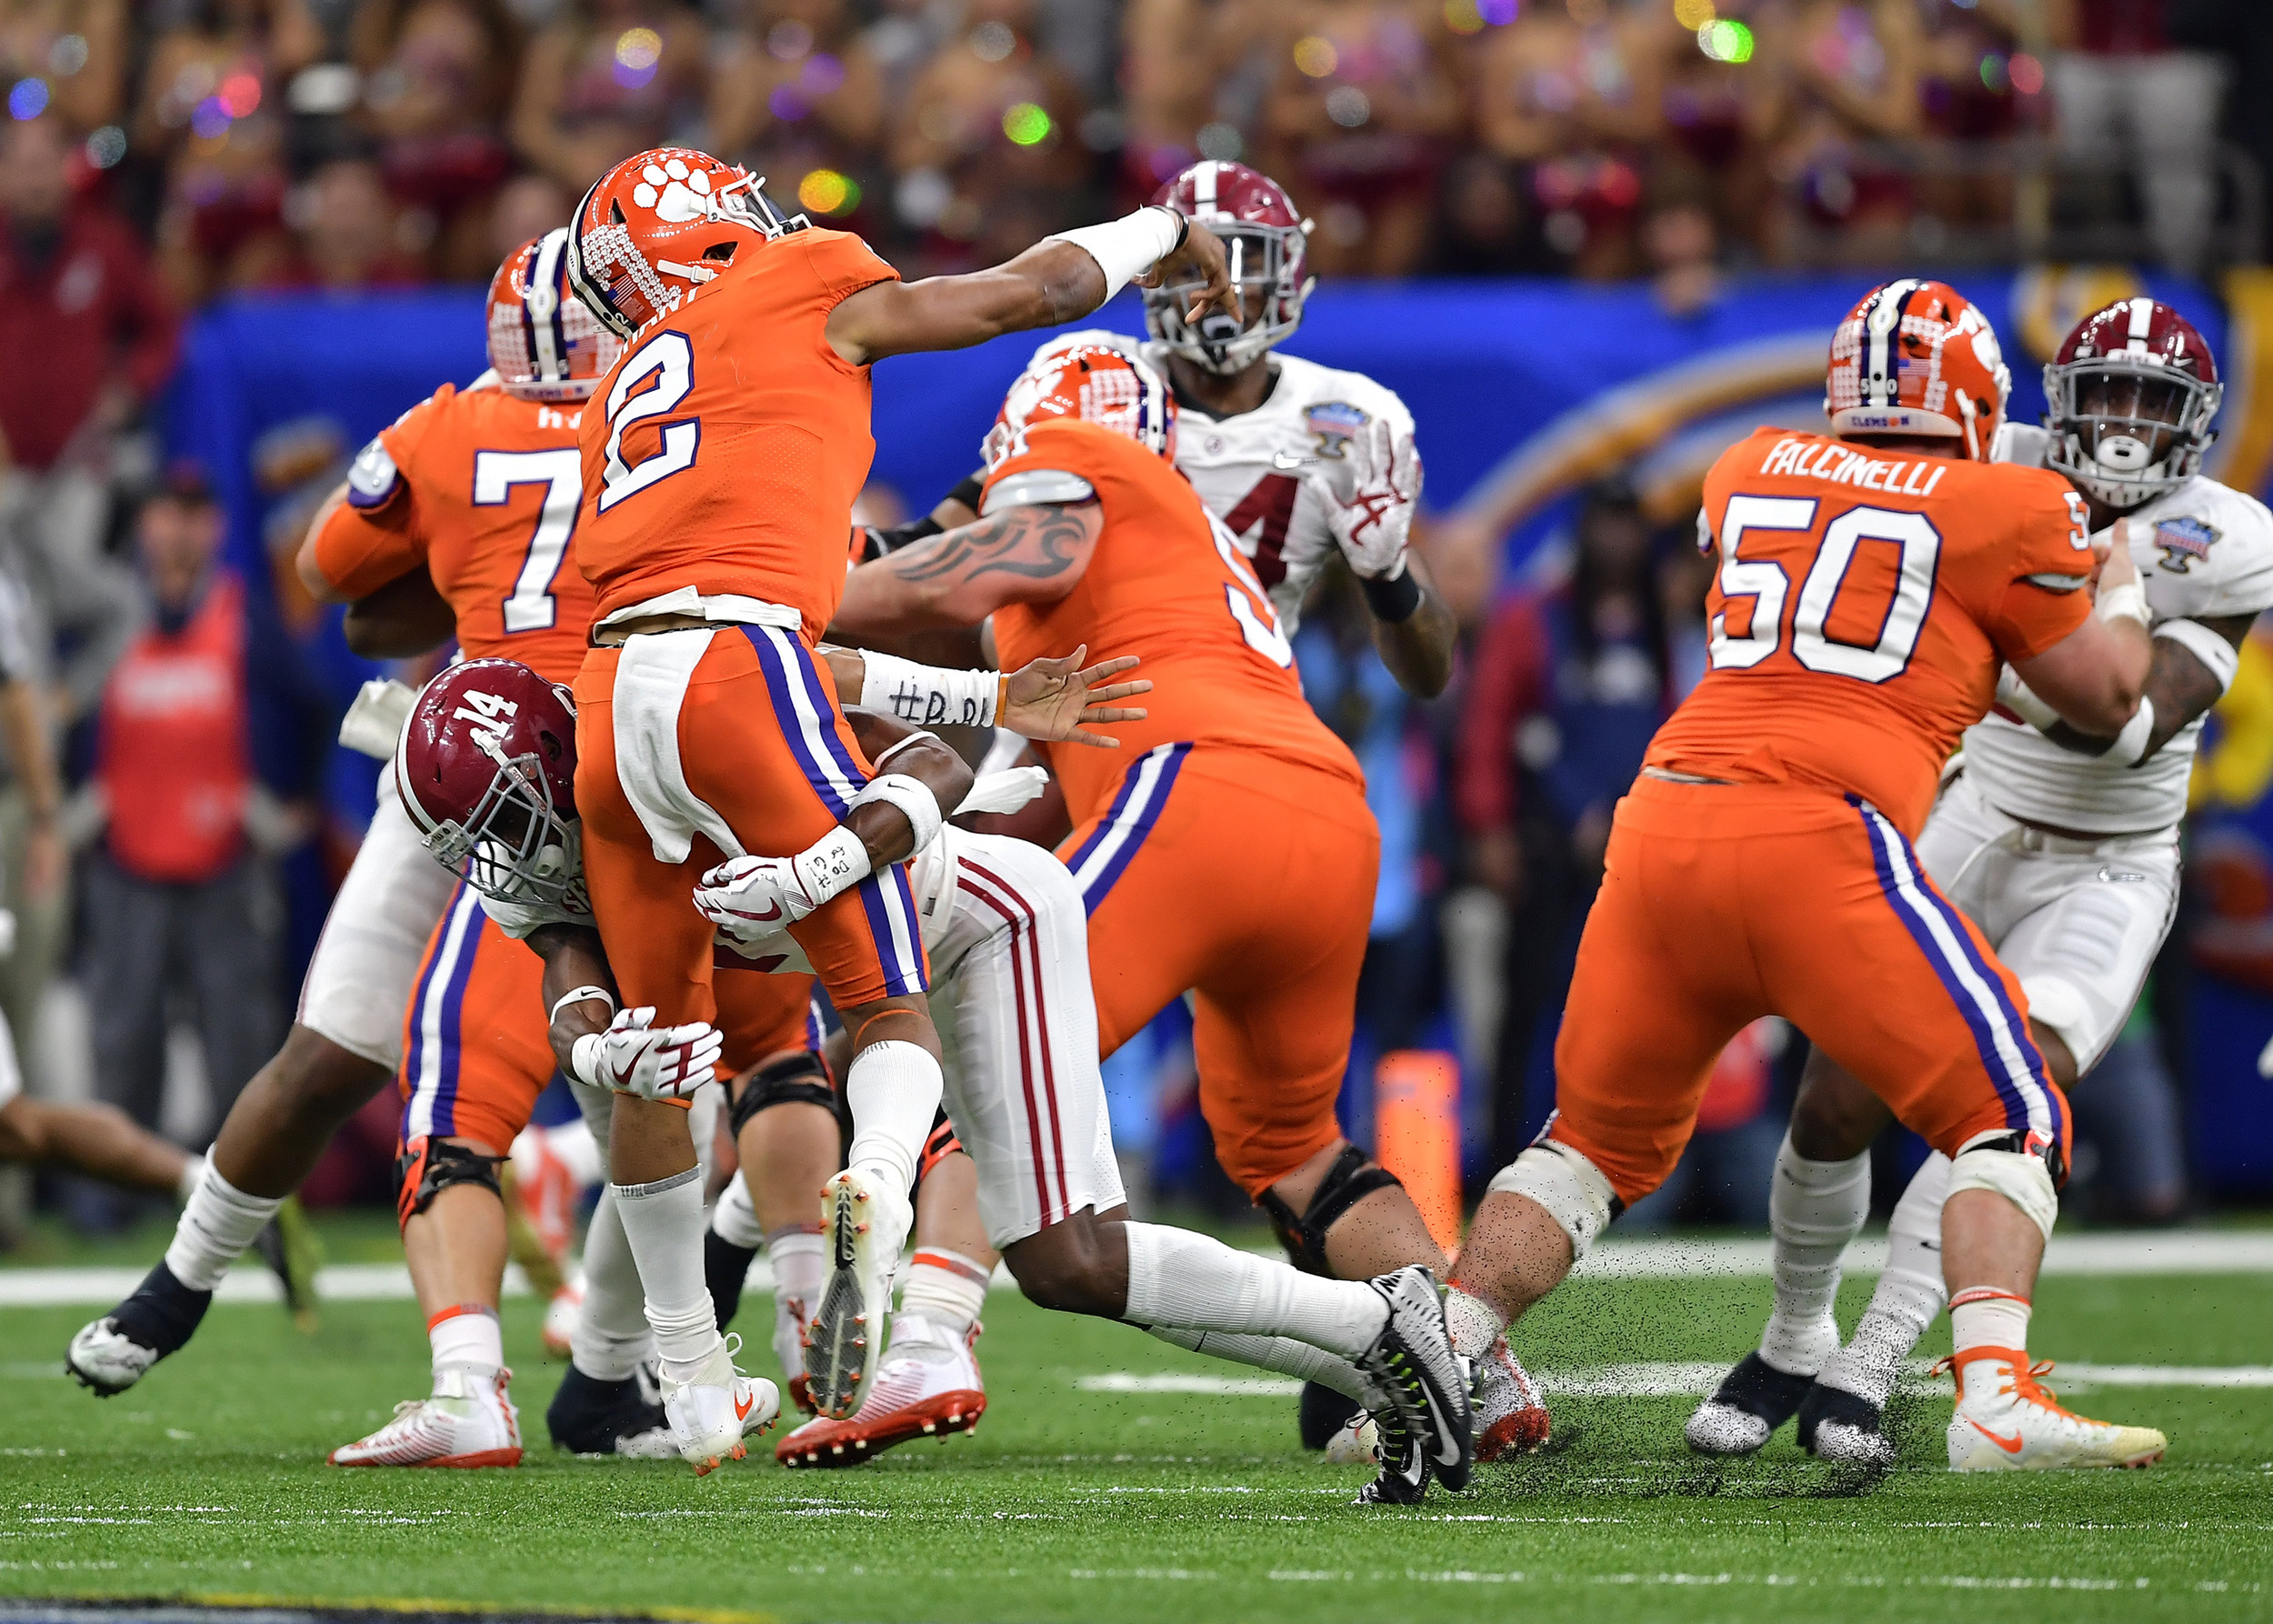 Alabama Crimson Tide defensive back Deionte Thompson (14) puts pressure on the Clemson quarterback during the first half of the 2018 AllState Sugar Bowl on Jan. 1, 2018, at the Mercedes-Benz SuperDome in New Orleans, La. Alabama won the game 24-6. (Photo by Lee Walls)